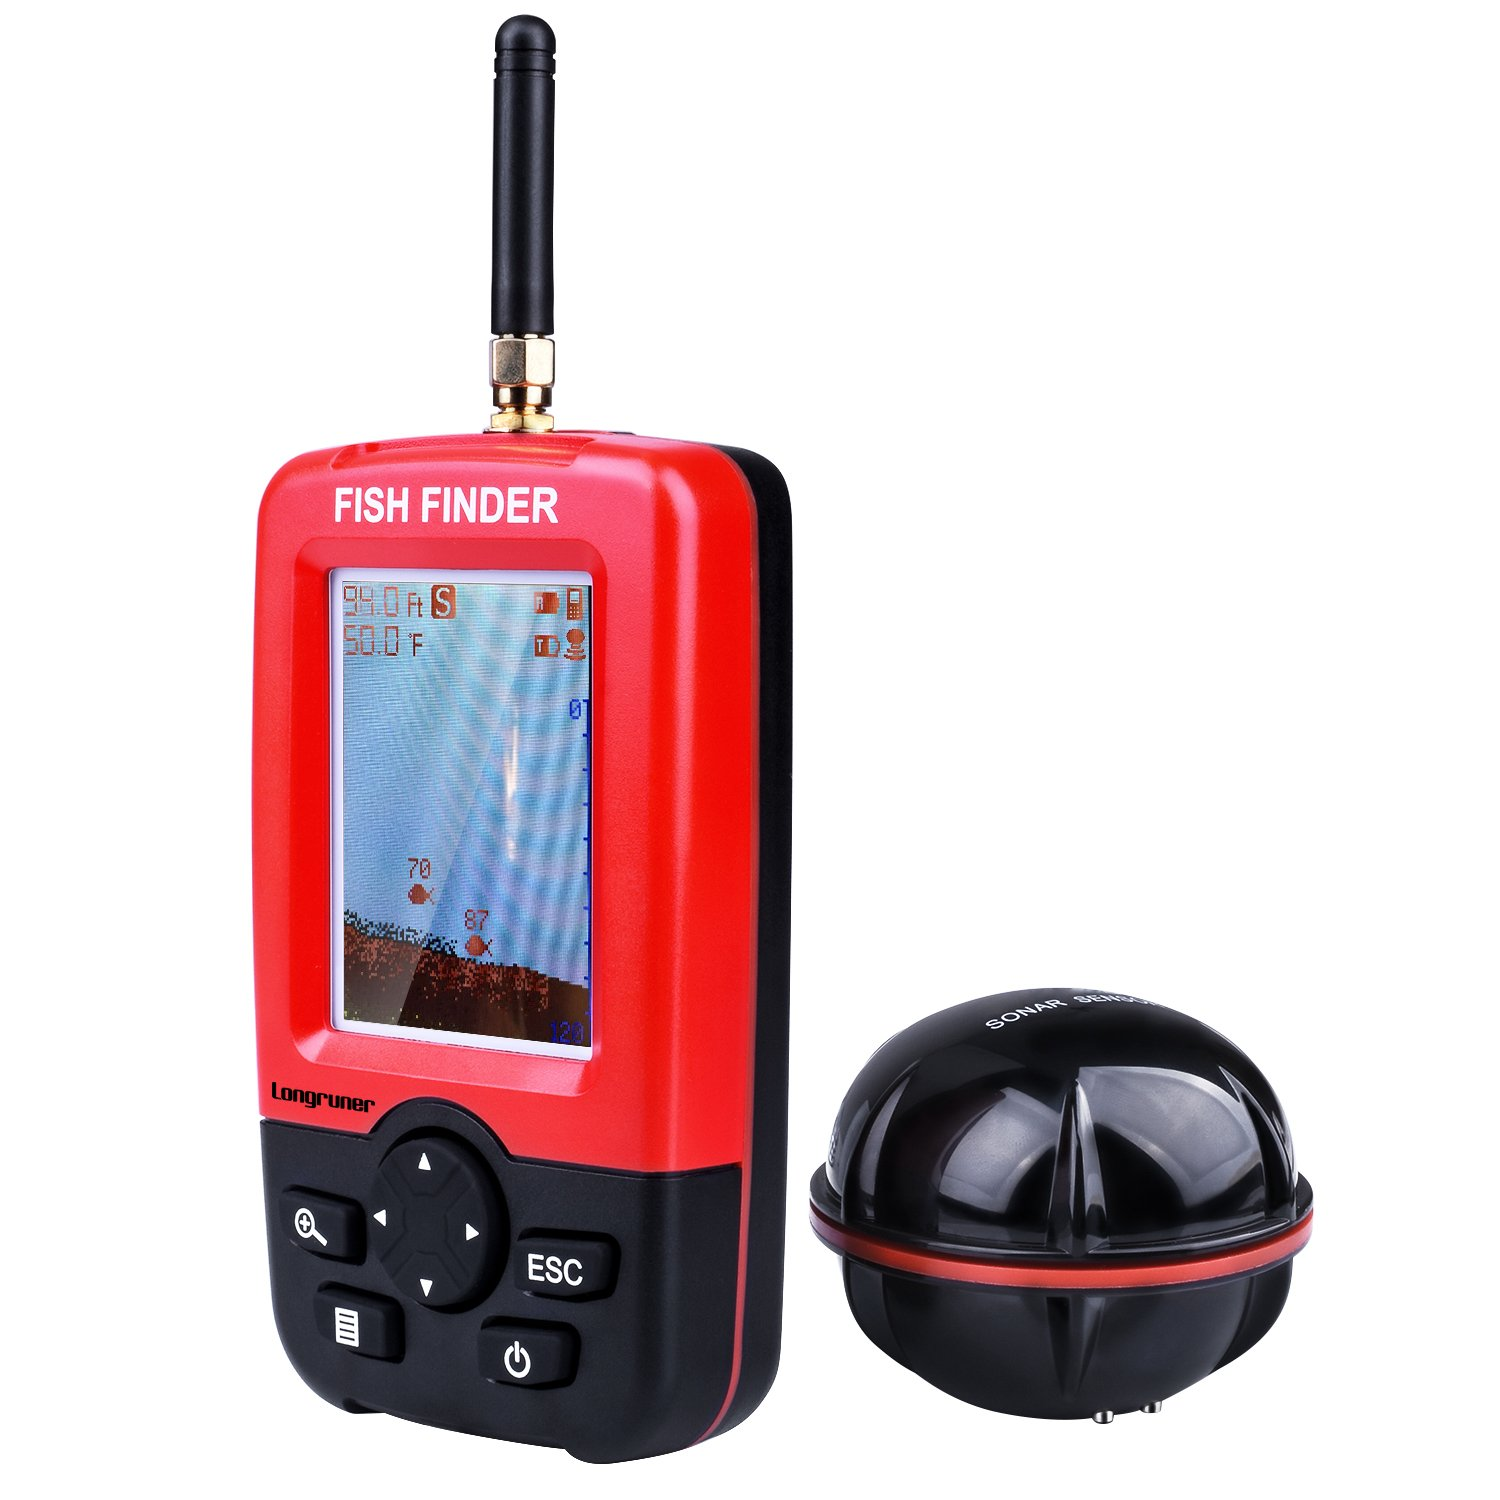 Longruner Fishing Finder Portable Wireless Sonar Sensor Fish Attractor and Fish Gear with Colorful Display product image